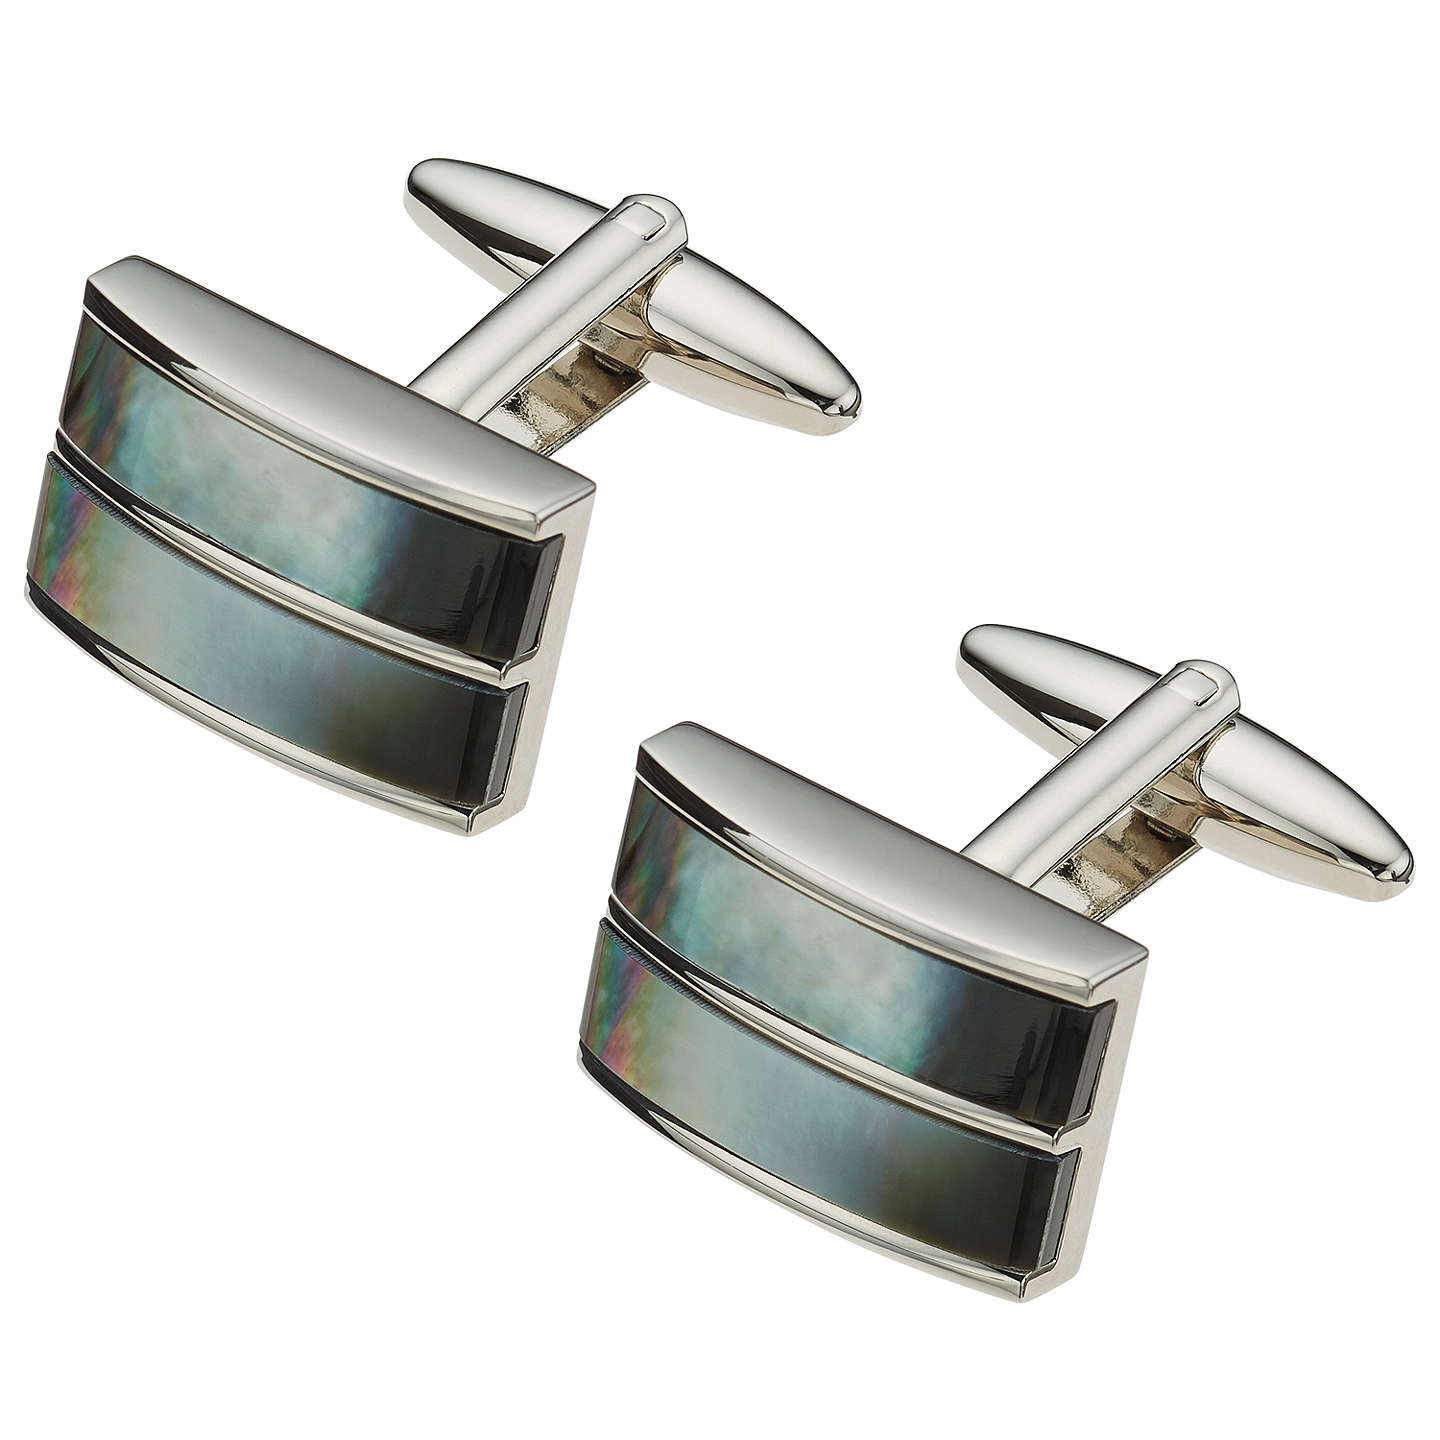 Silver Wedding Anniversary Gifts John Lewis: John Lewis Double Band Mother Of Pearl Cufflinks, Mother